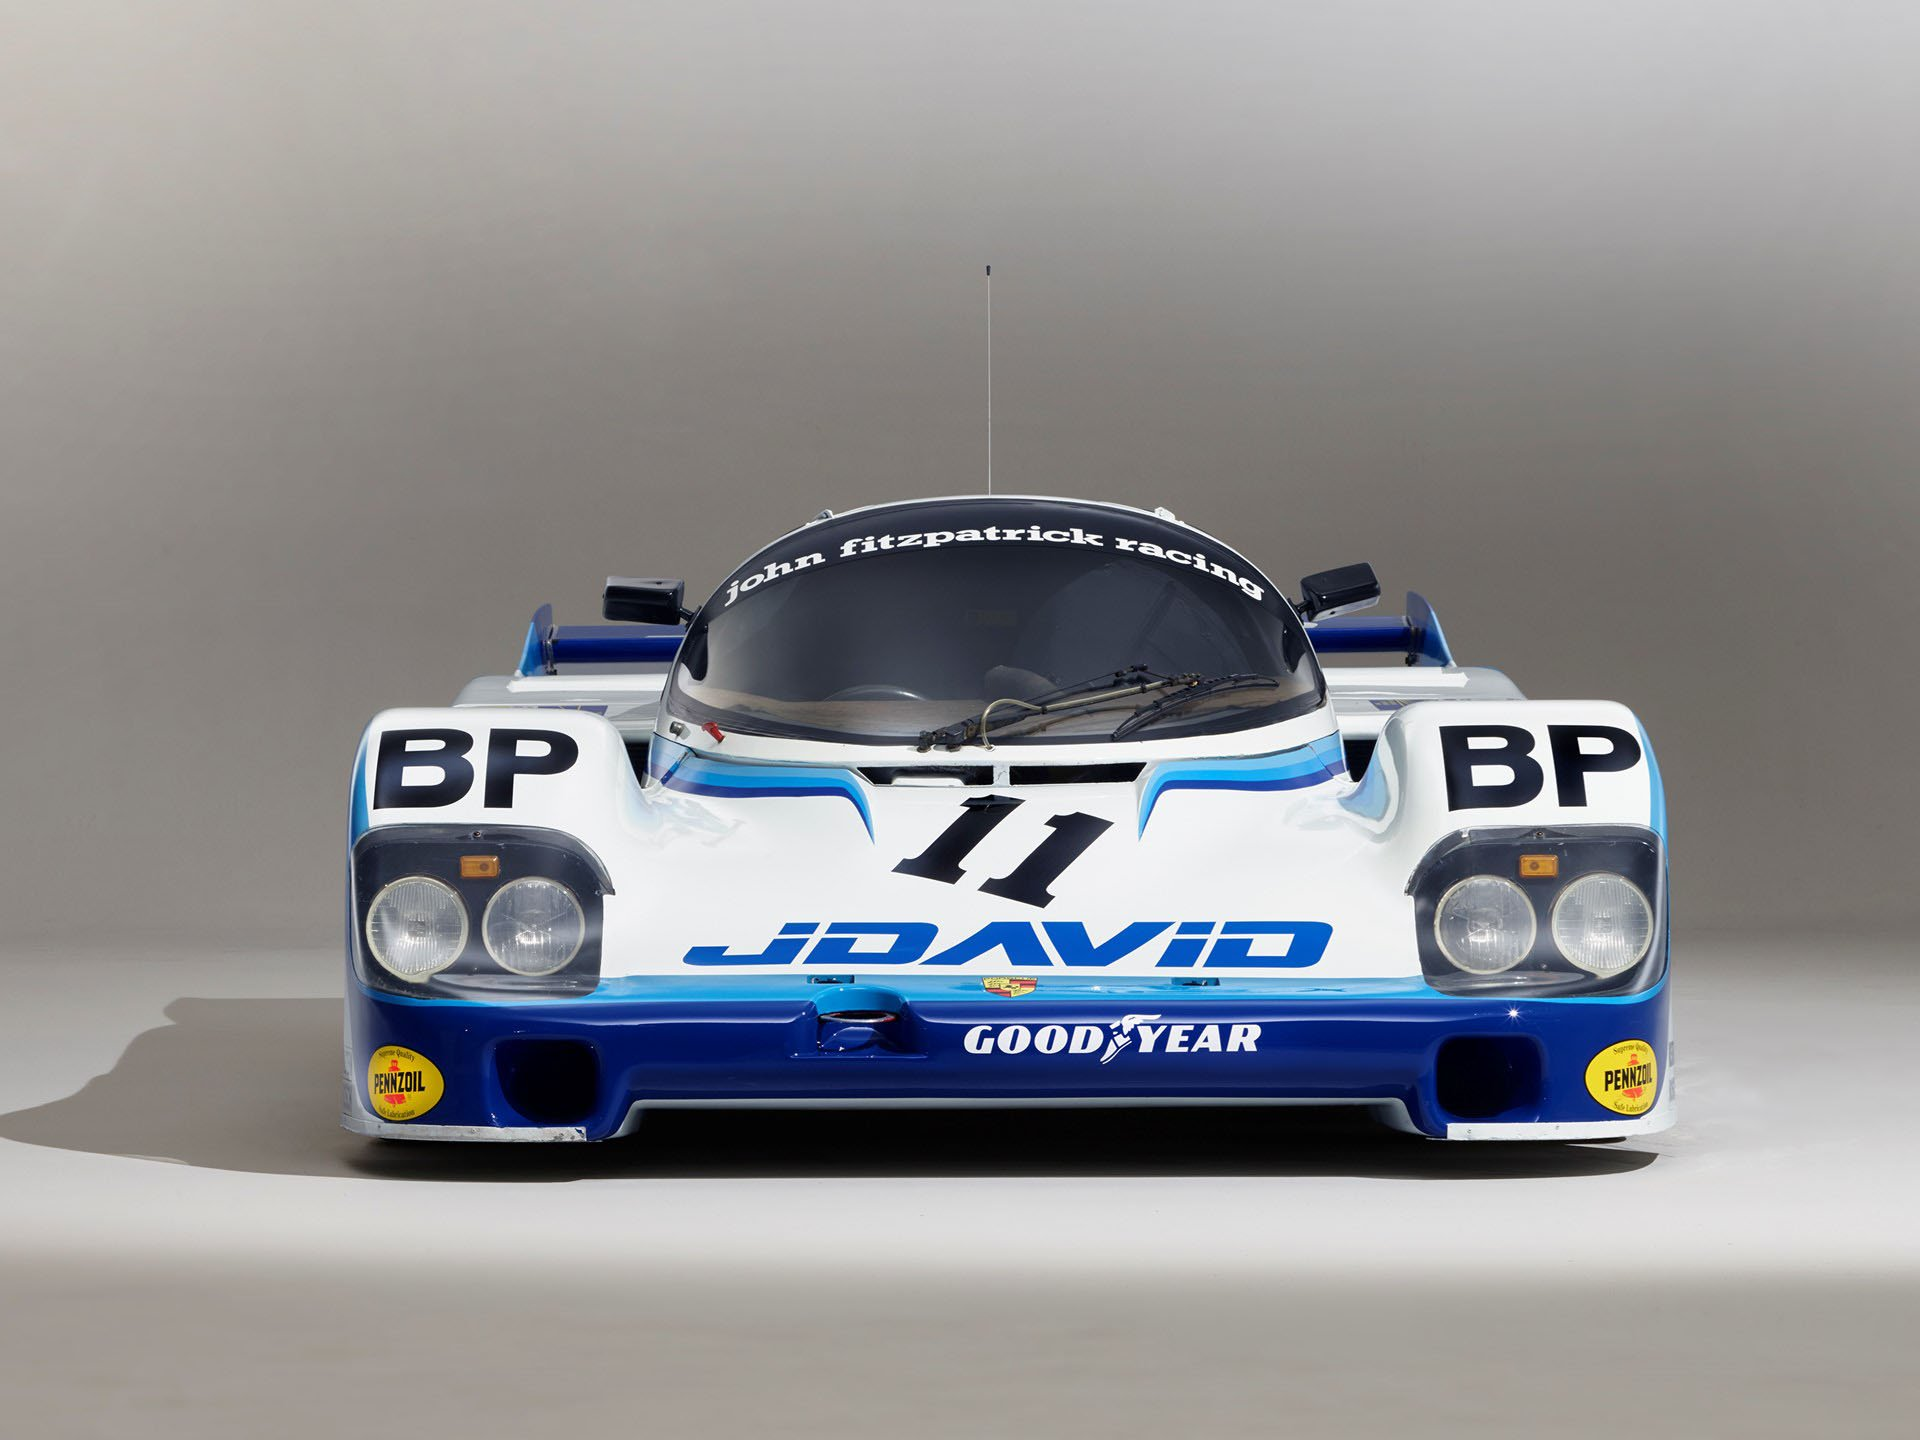 Porsche 956-110 in auction (4)